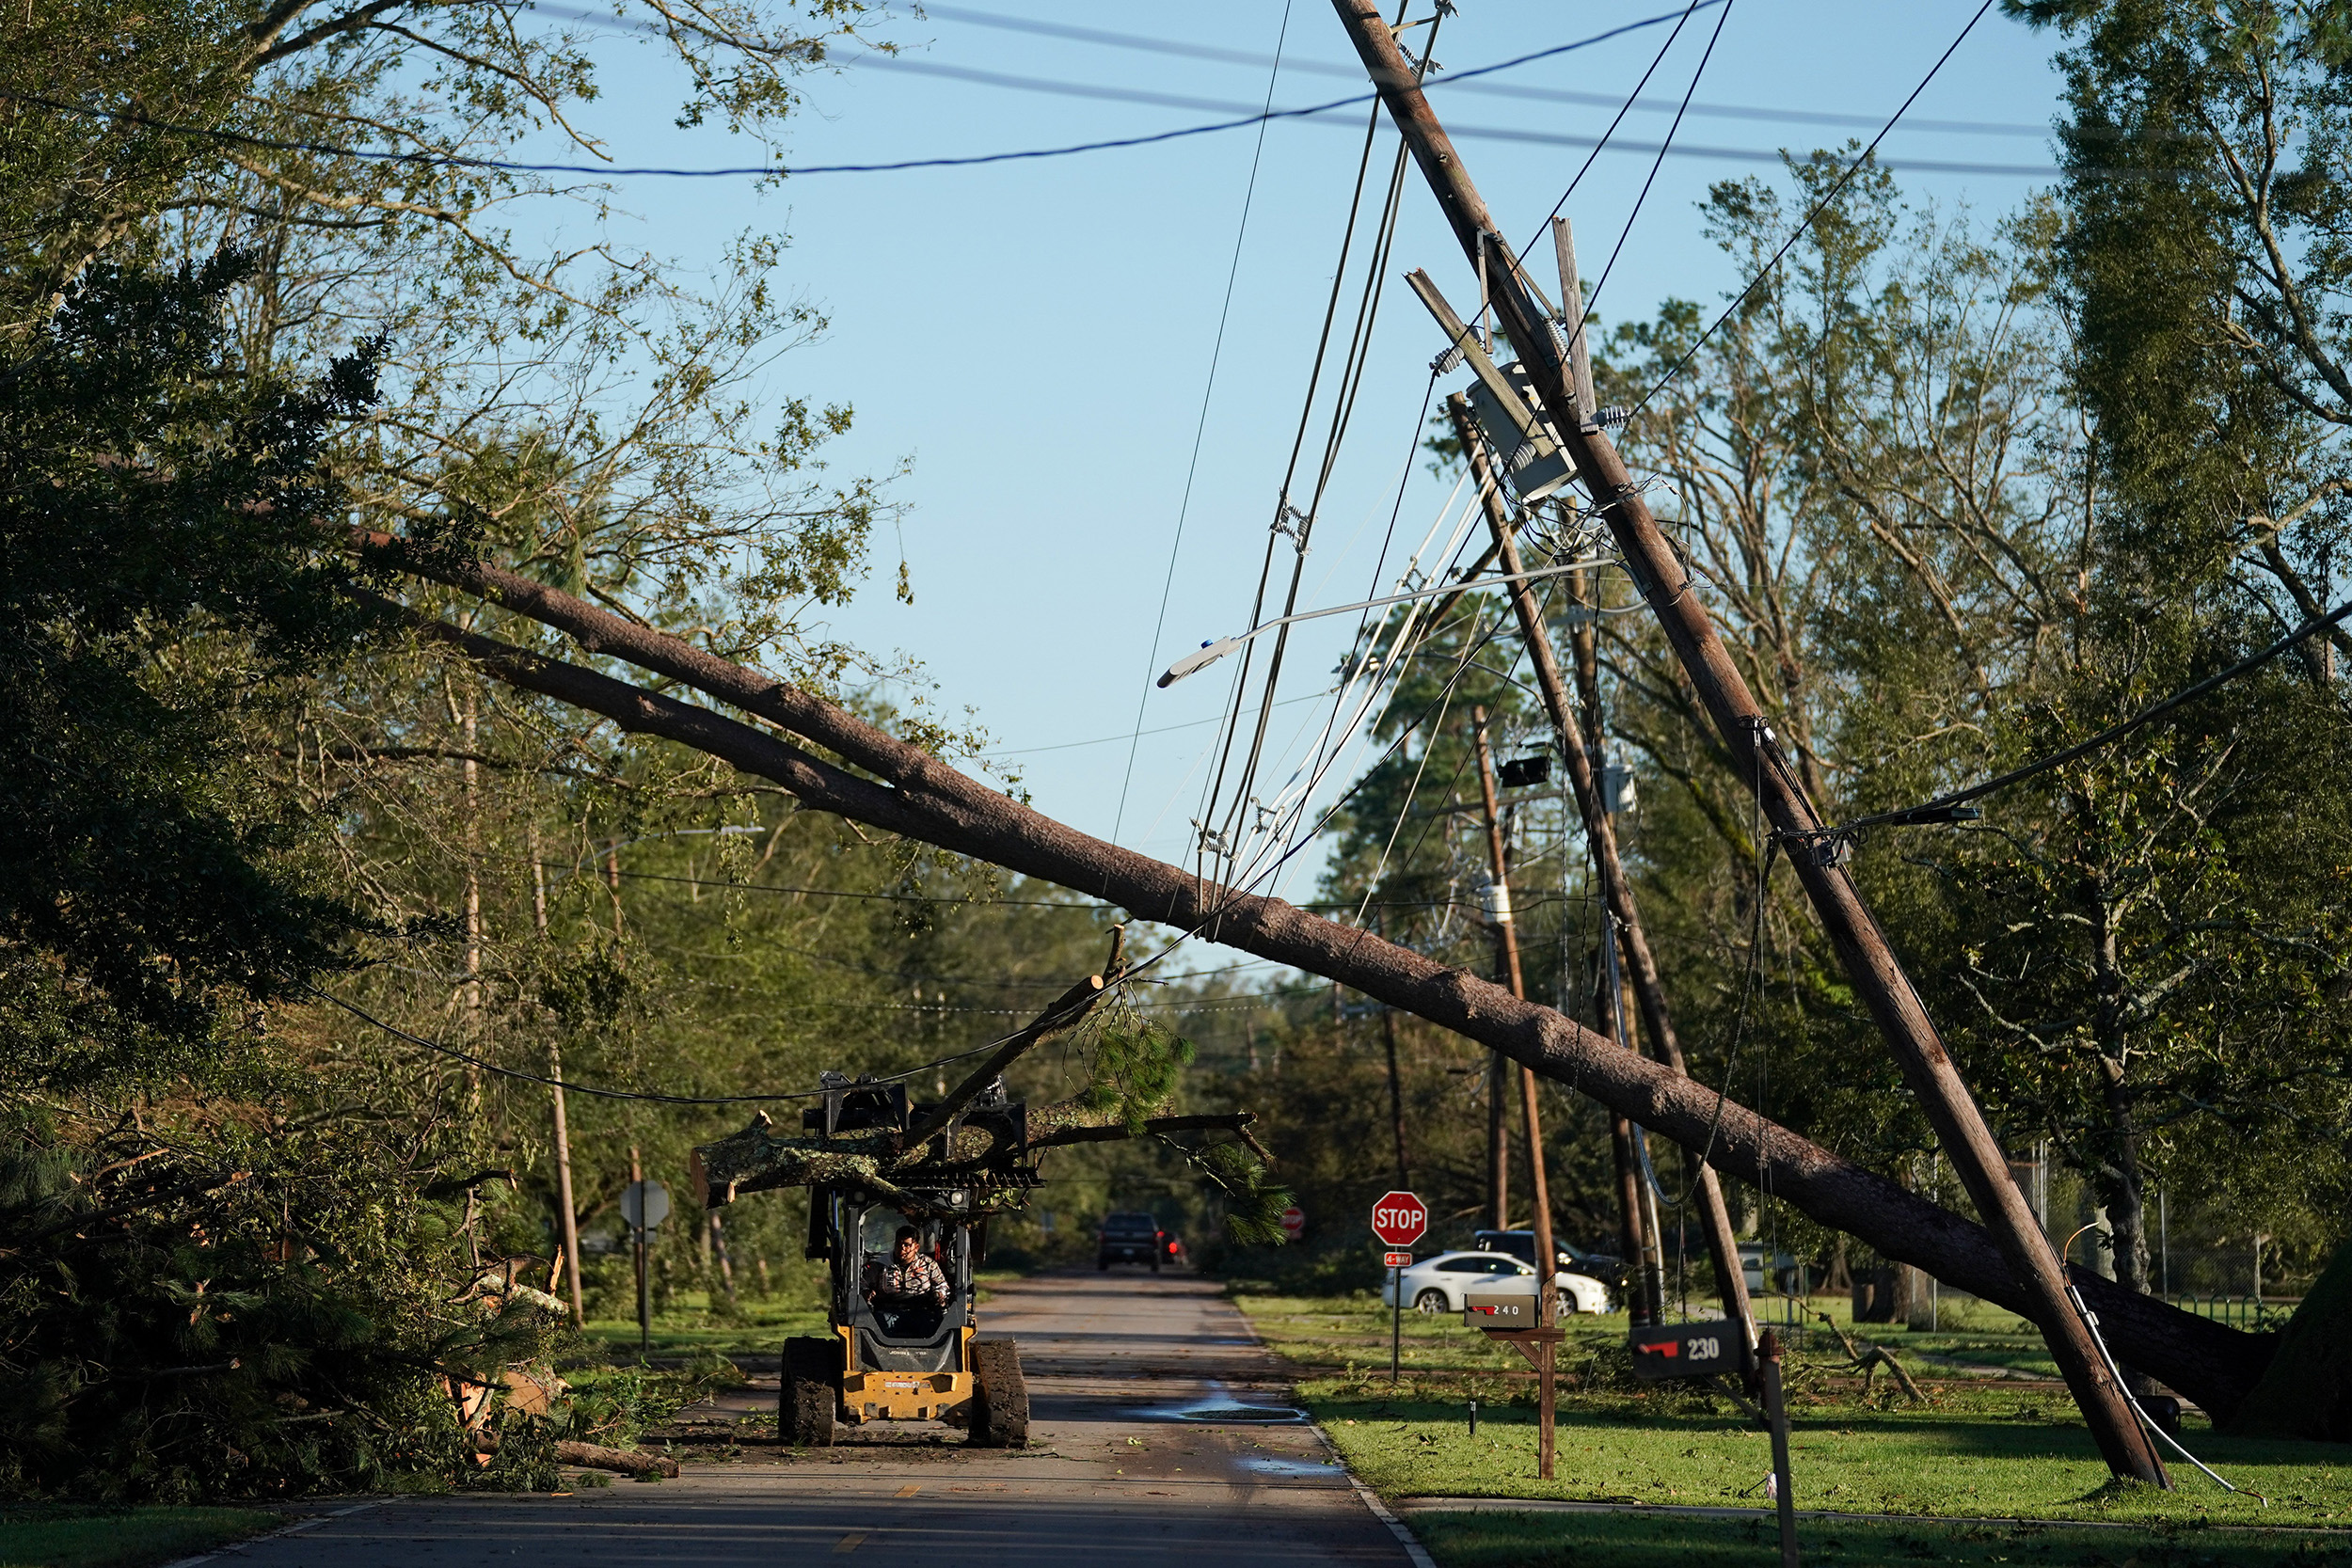 Some power may be restored to New Orleans on Wednesday, mayor says